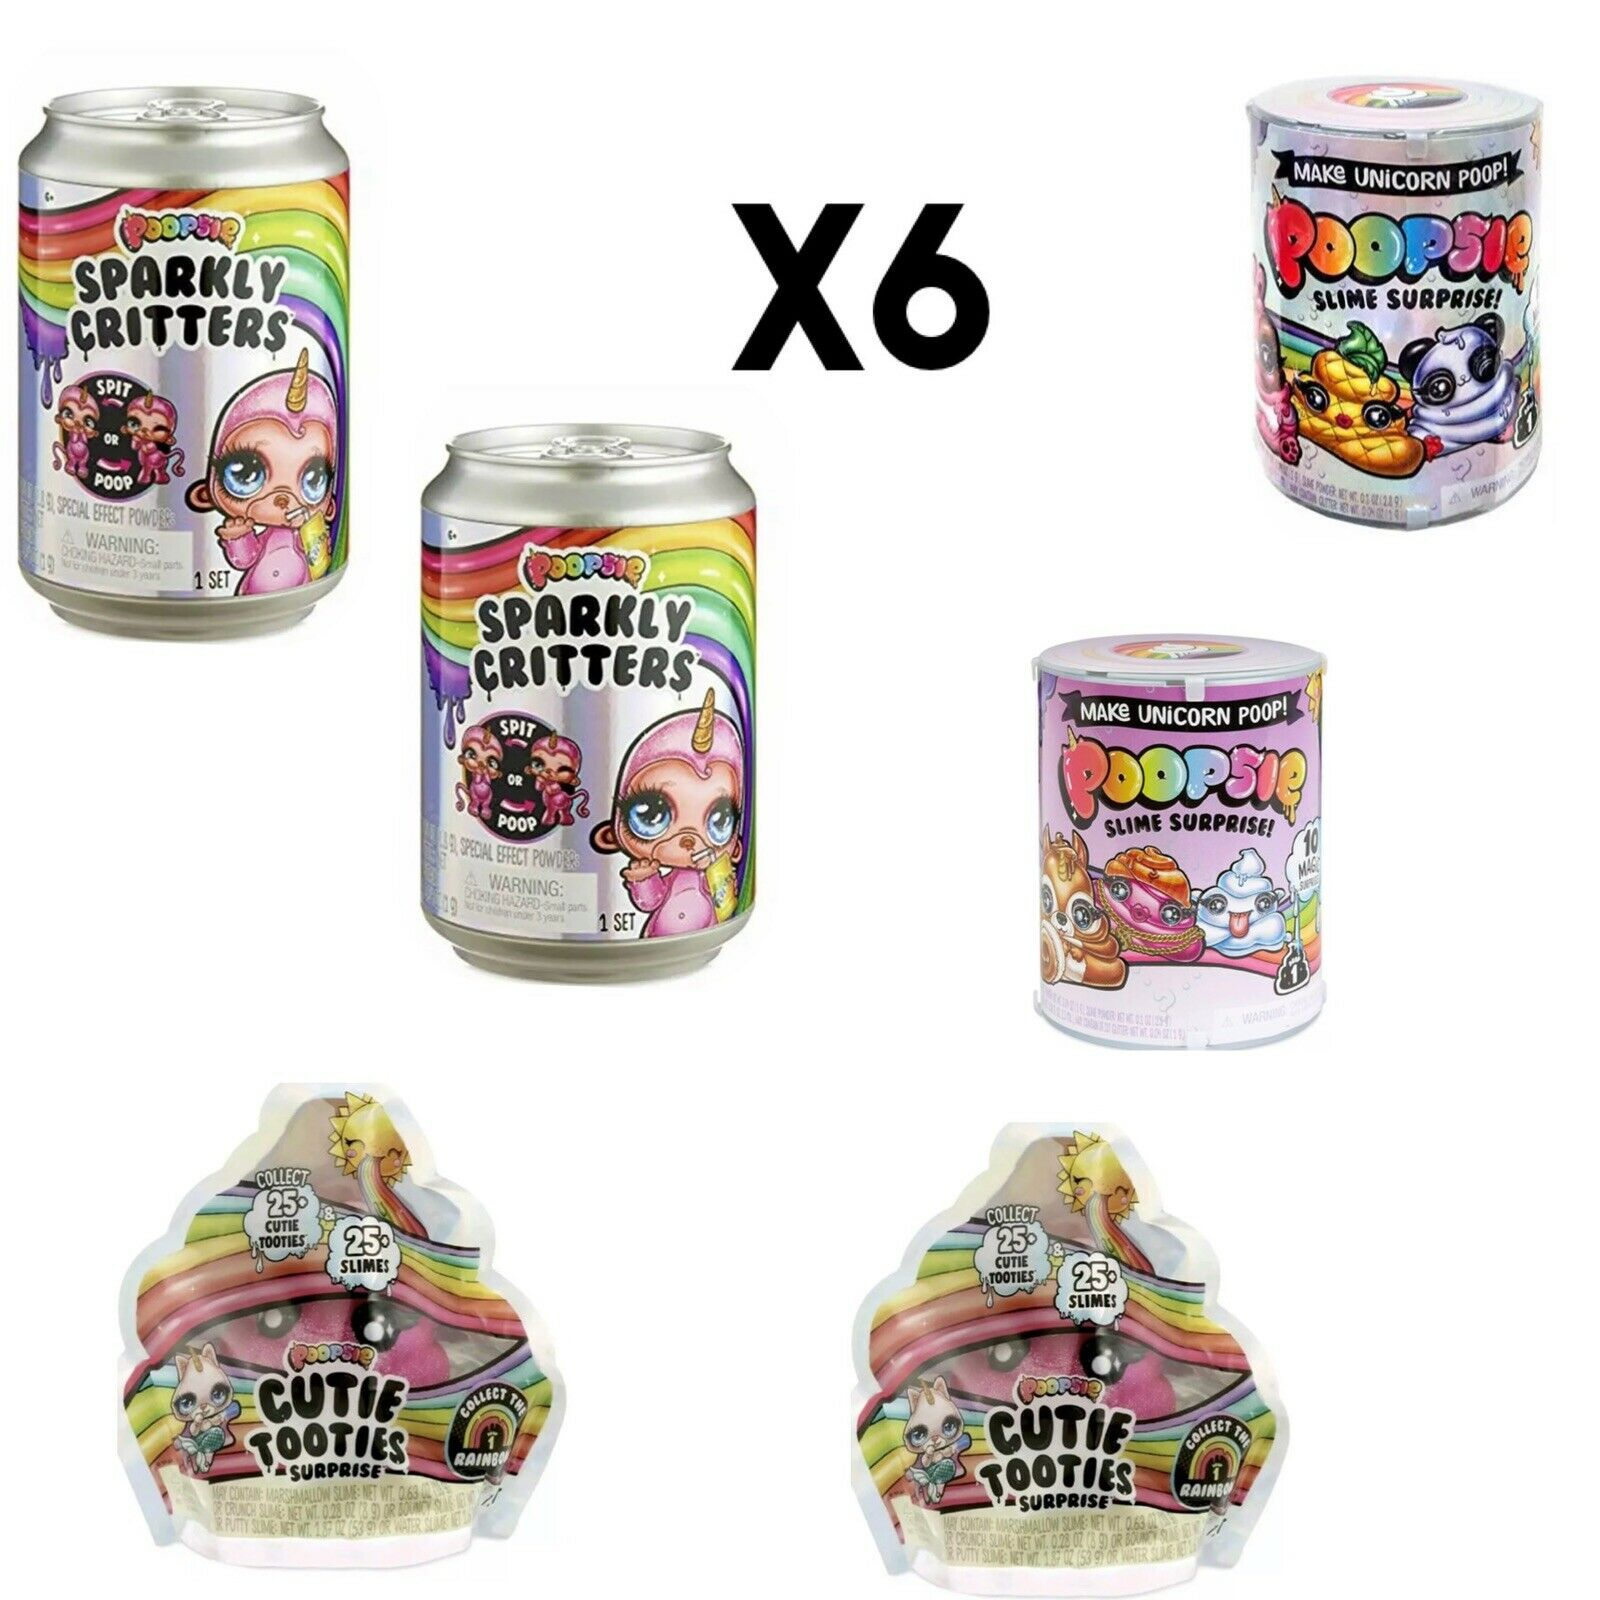 POOPSIE Sparkly Critter SURPRISE Unicorn Figure Spits Poops Slime In Hand NEW X6